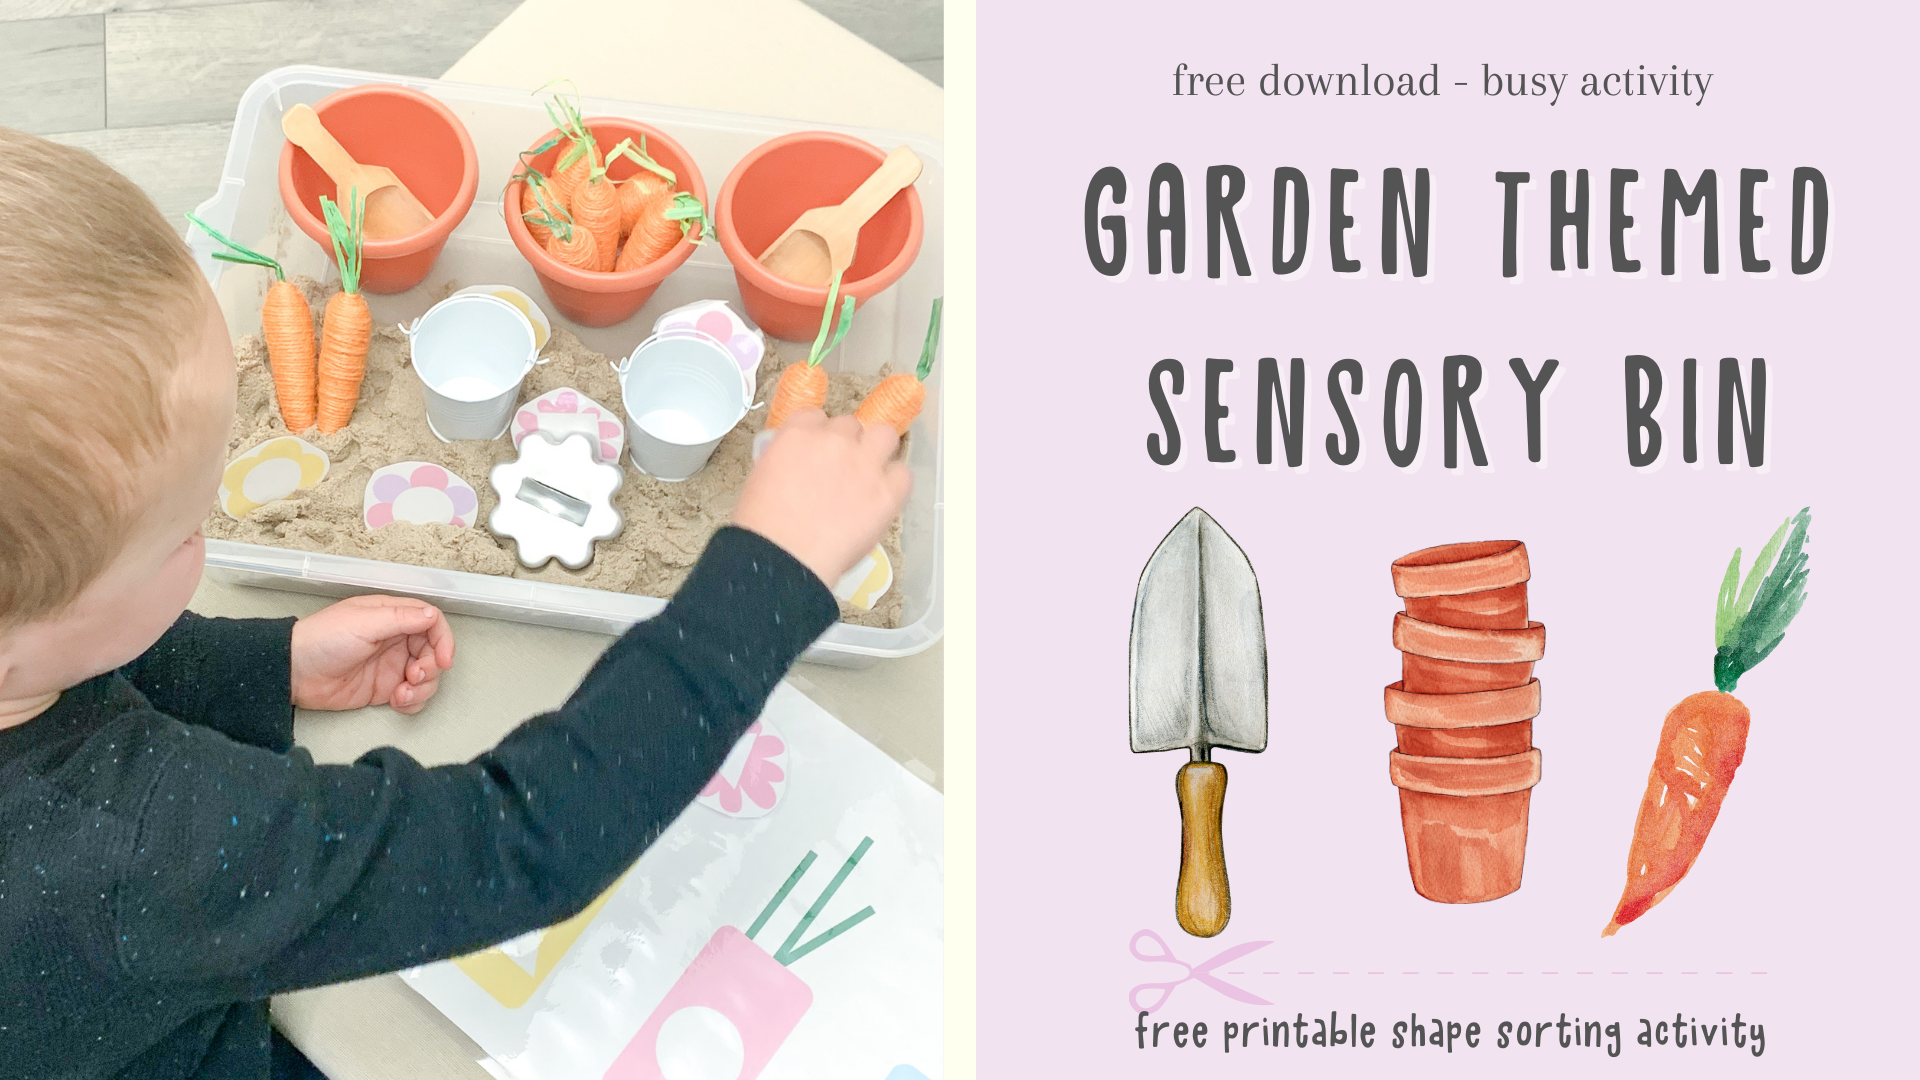 learning experience using the free flower vase shape sorting download. preschool at home learning activities. spring activity ideas for preschool. Spring downloads for preschool.